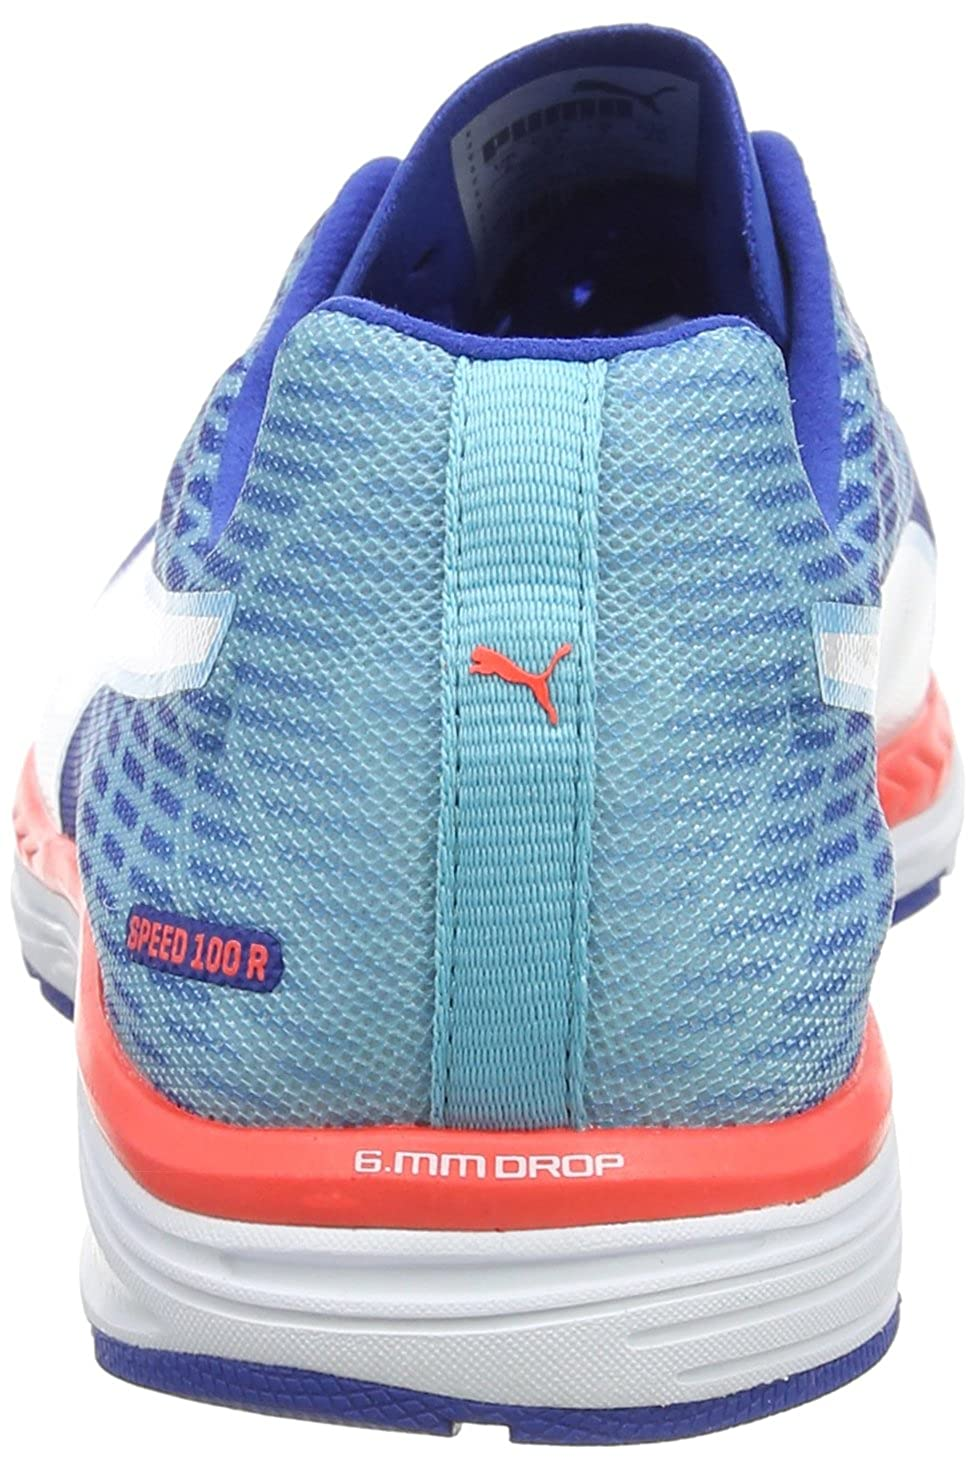 1e8e614815cc Puma Men s Speed 100 R Ignite Blue Running Shoes-11 UK India (46 EU) ( 18852607)  Buy Online at Low Prices in India - Amazon.in